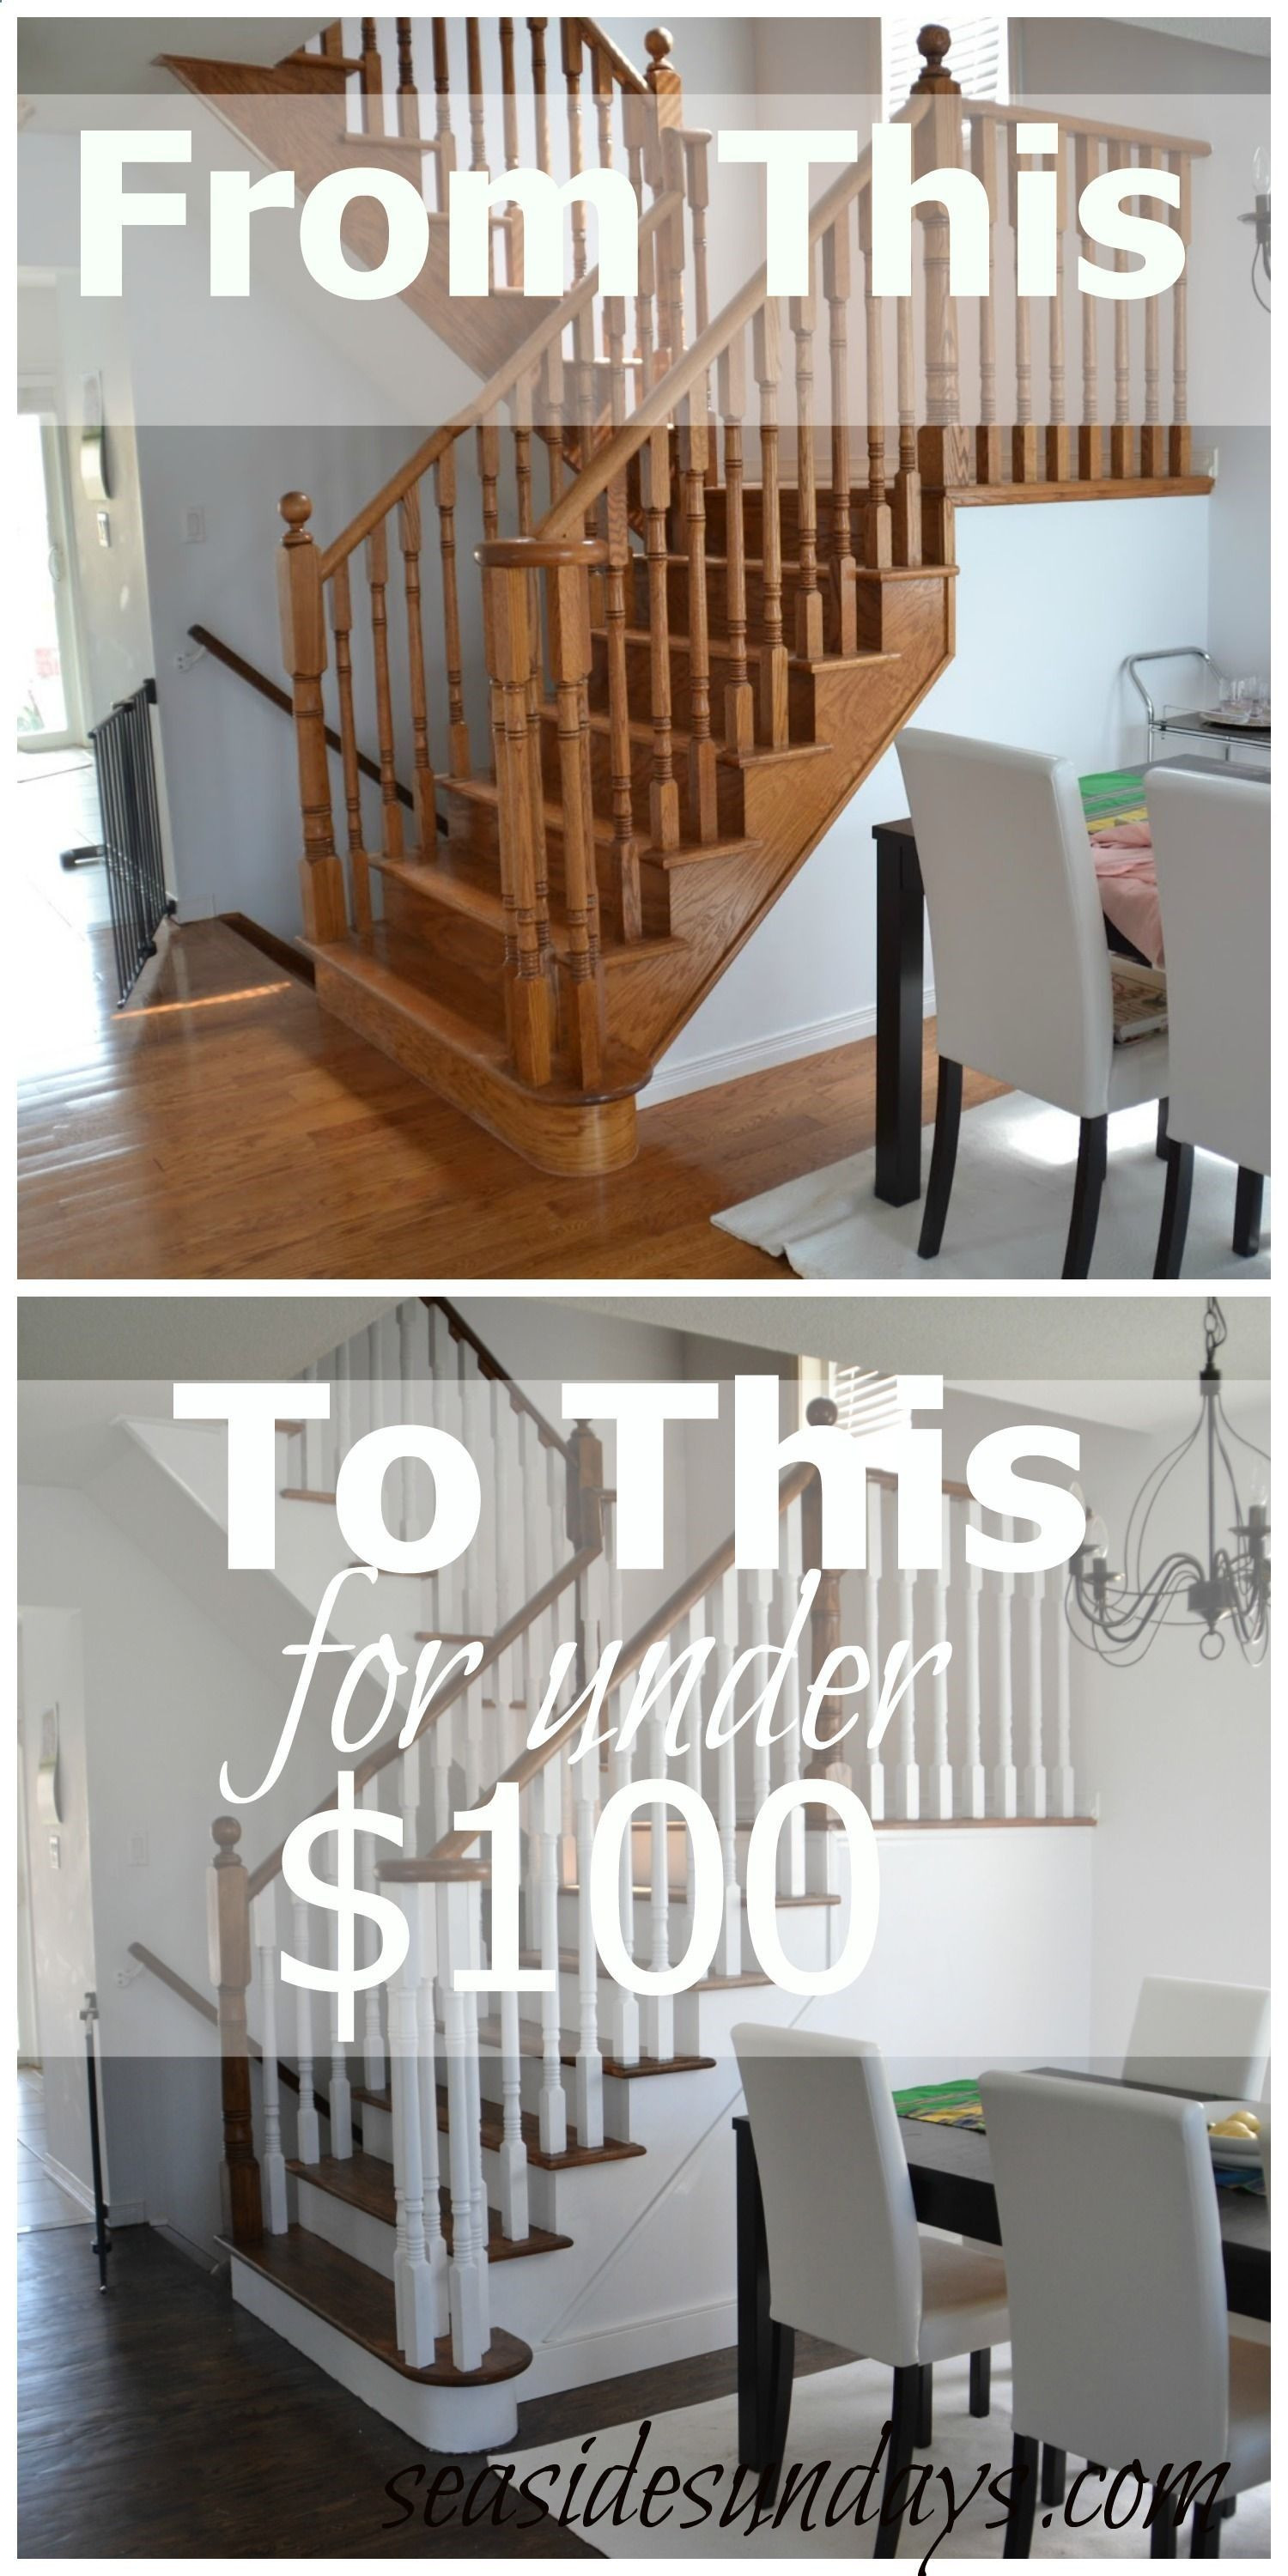 cost to refinish and stain hardwood floors of wood profit woodworking how to refinish hardwood floors diy intended for wood profit woodworking how to refinish hardwood floors diy refinish and stain stairs